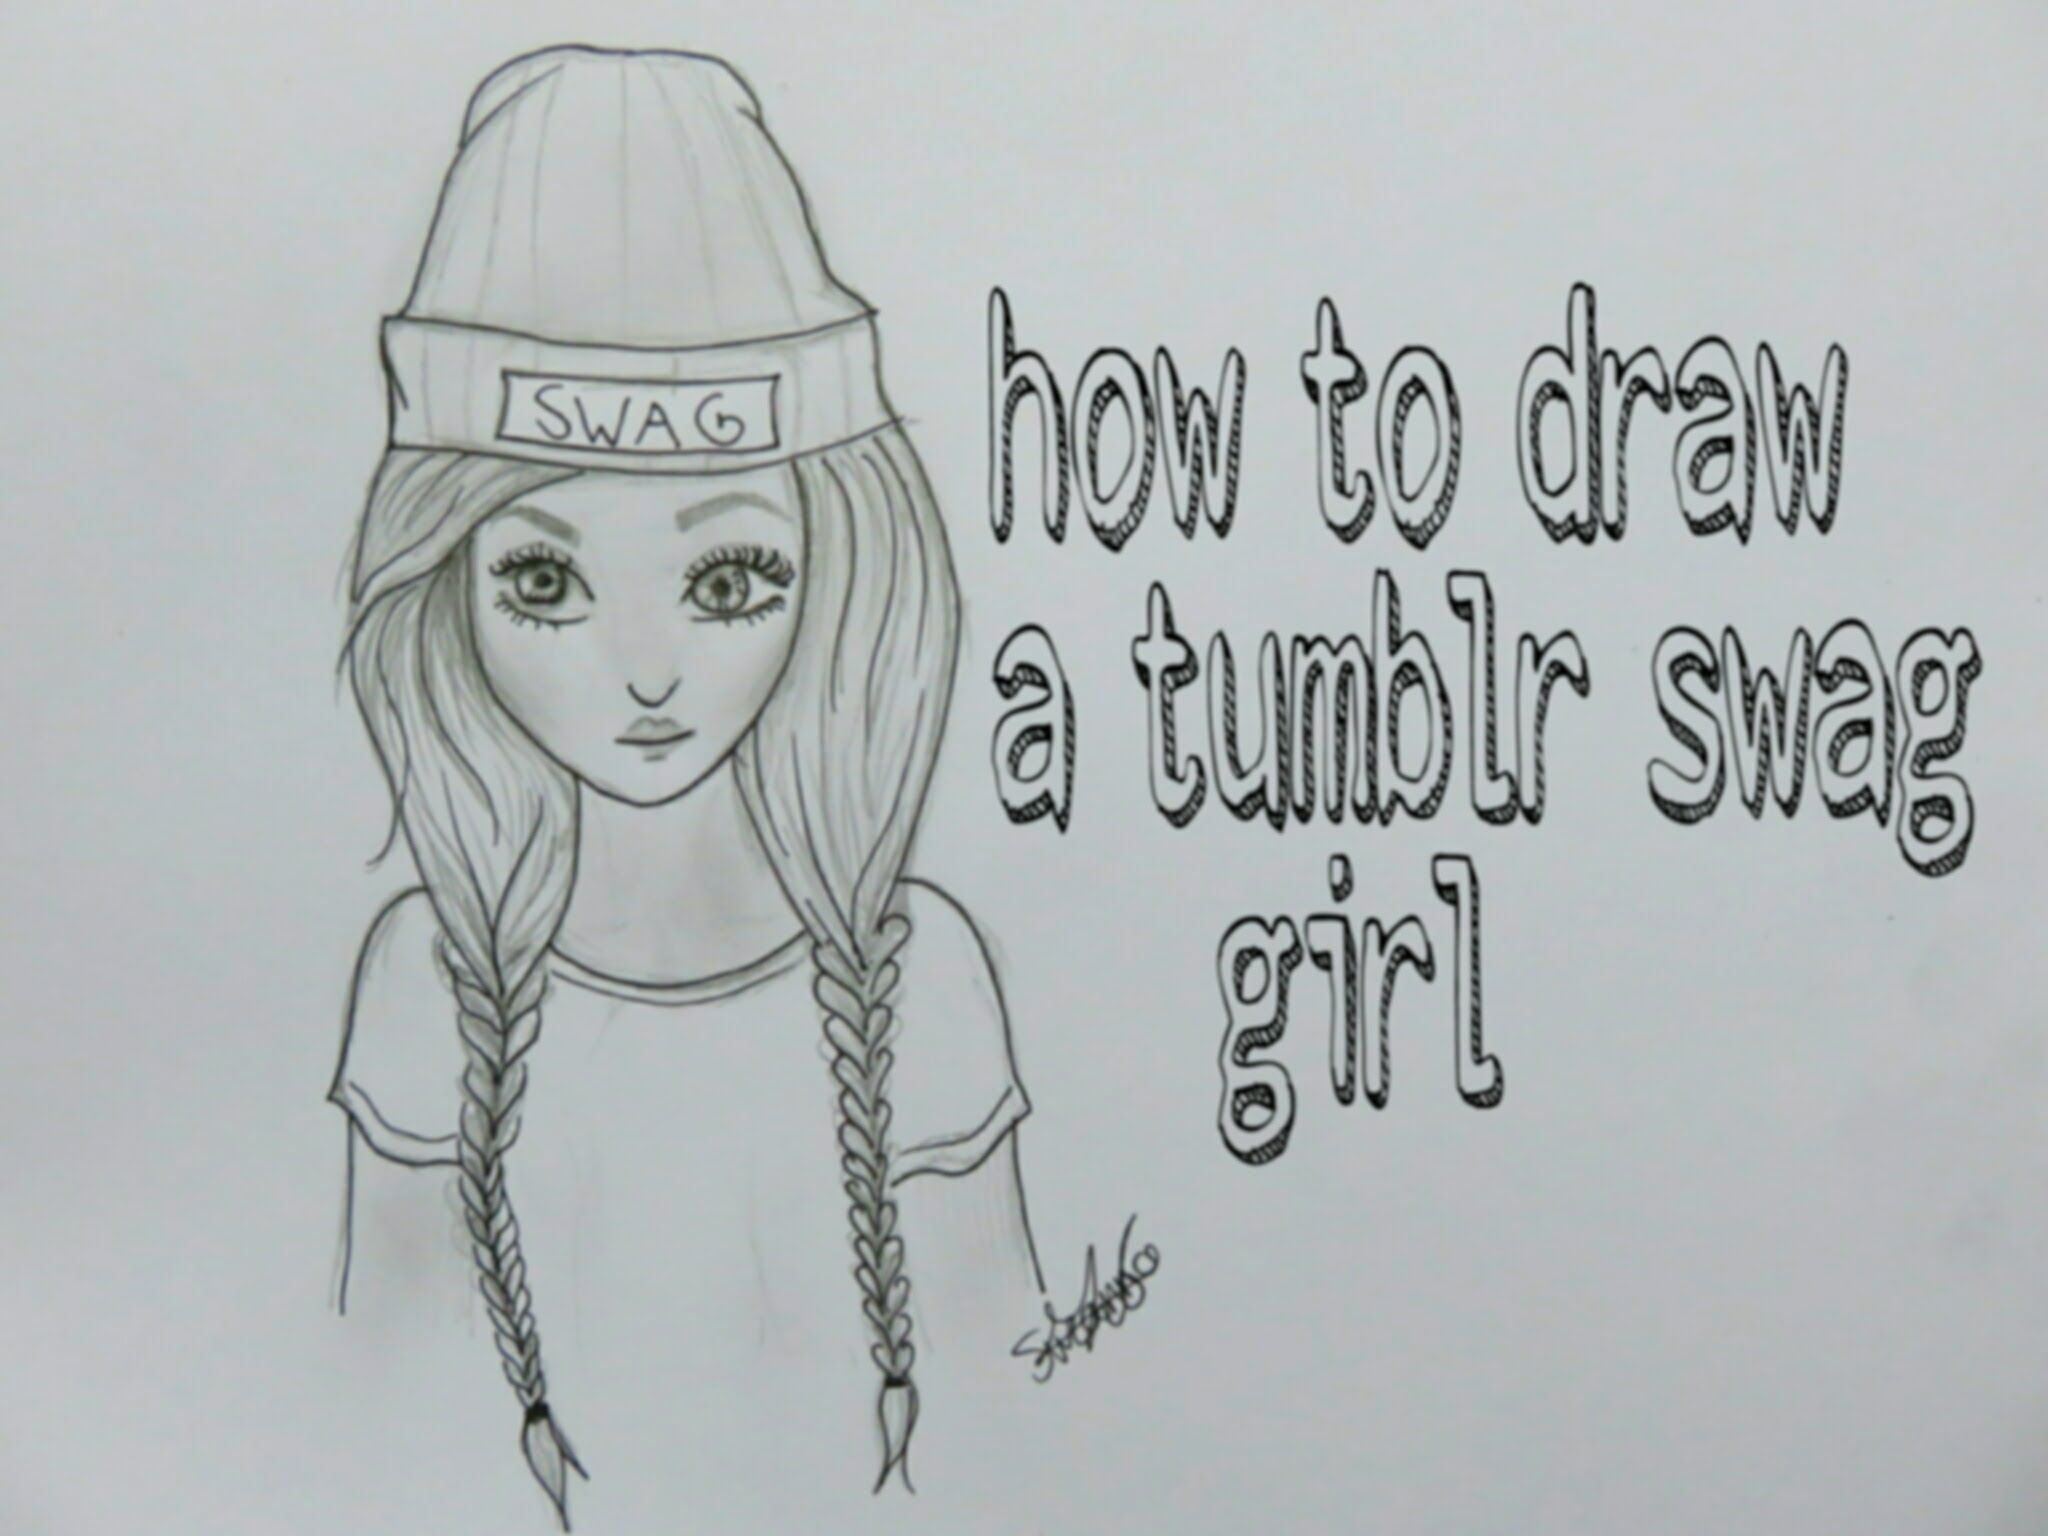 A new tutorial on how to draw a tumblr swag girl, hope you